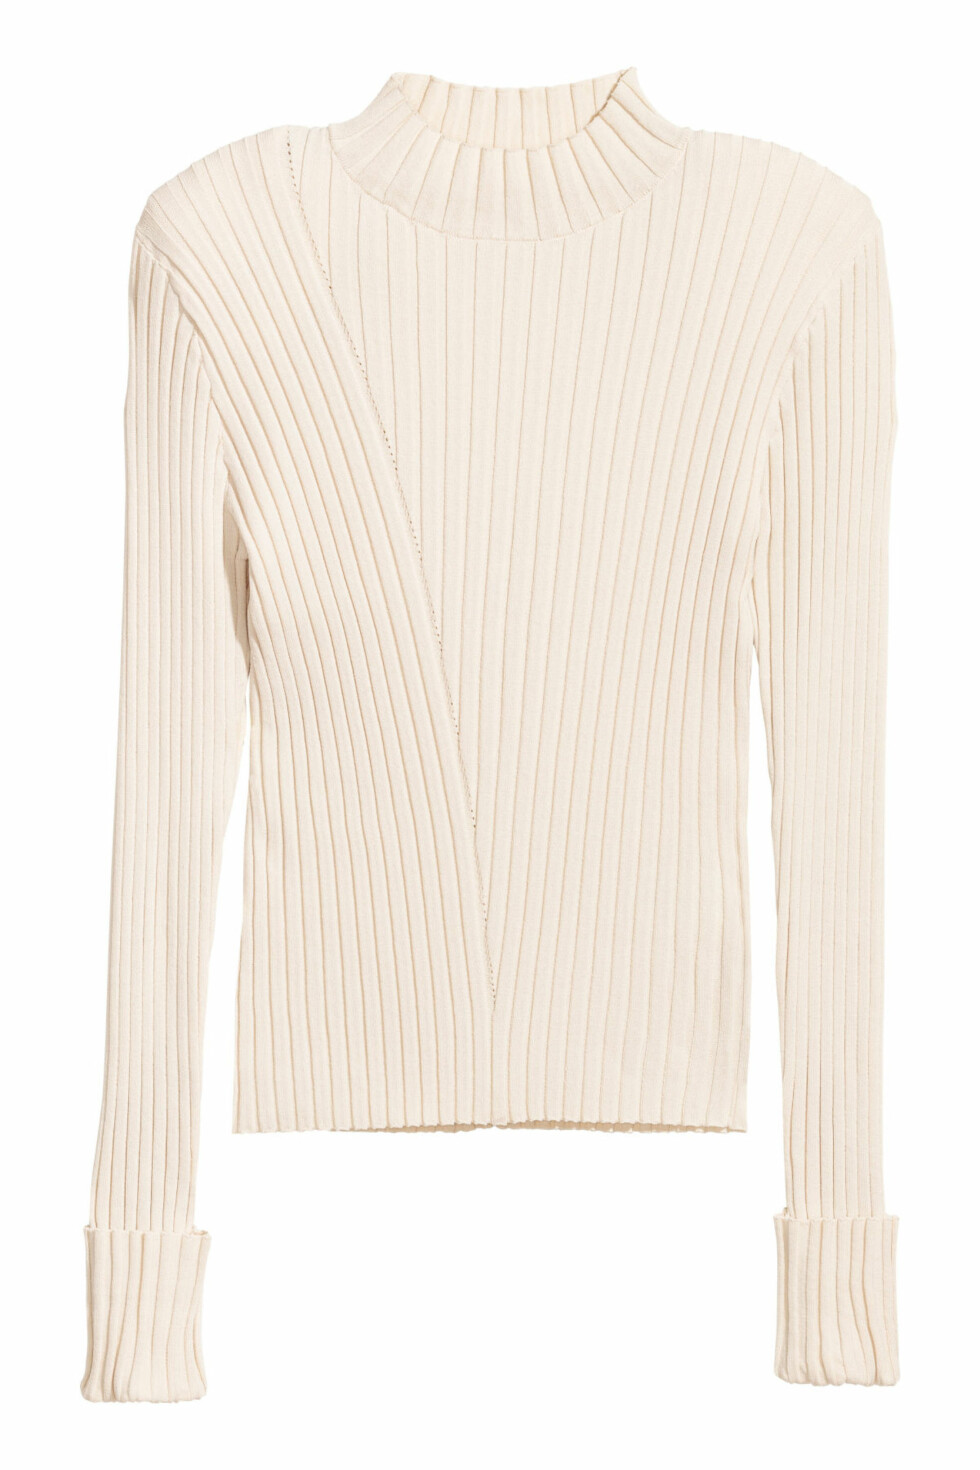 Topp fra H&M |399,-| http://www.hm.com/no/product/93062?article=93062-C